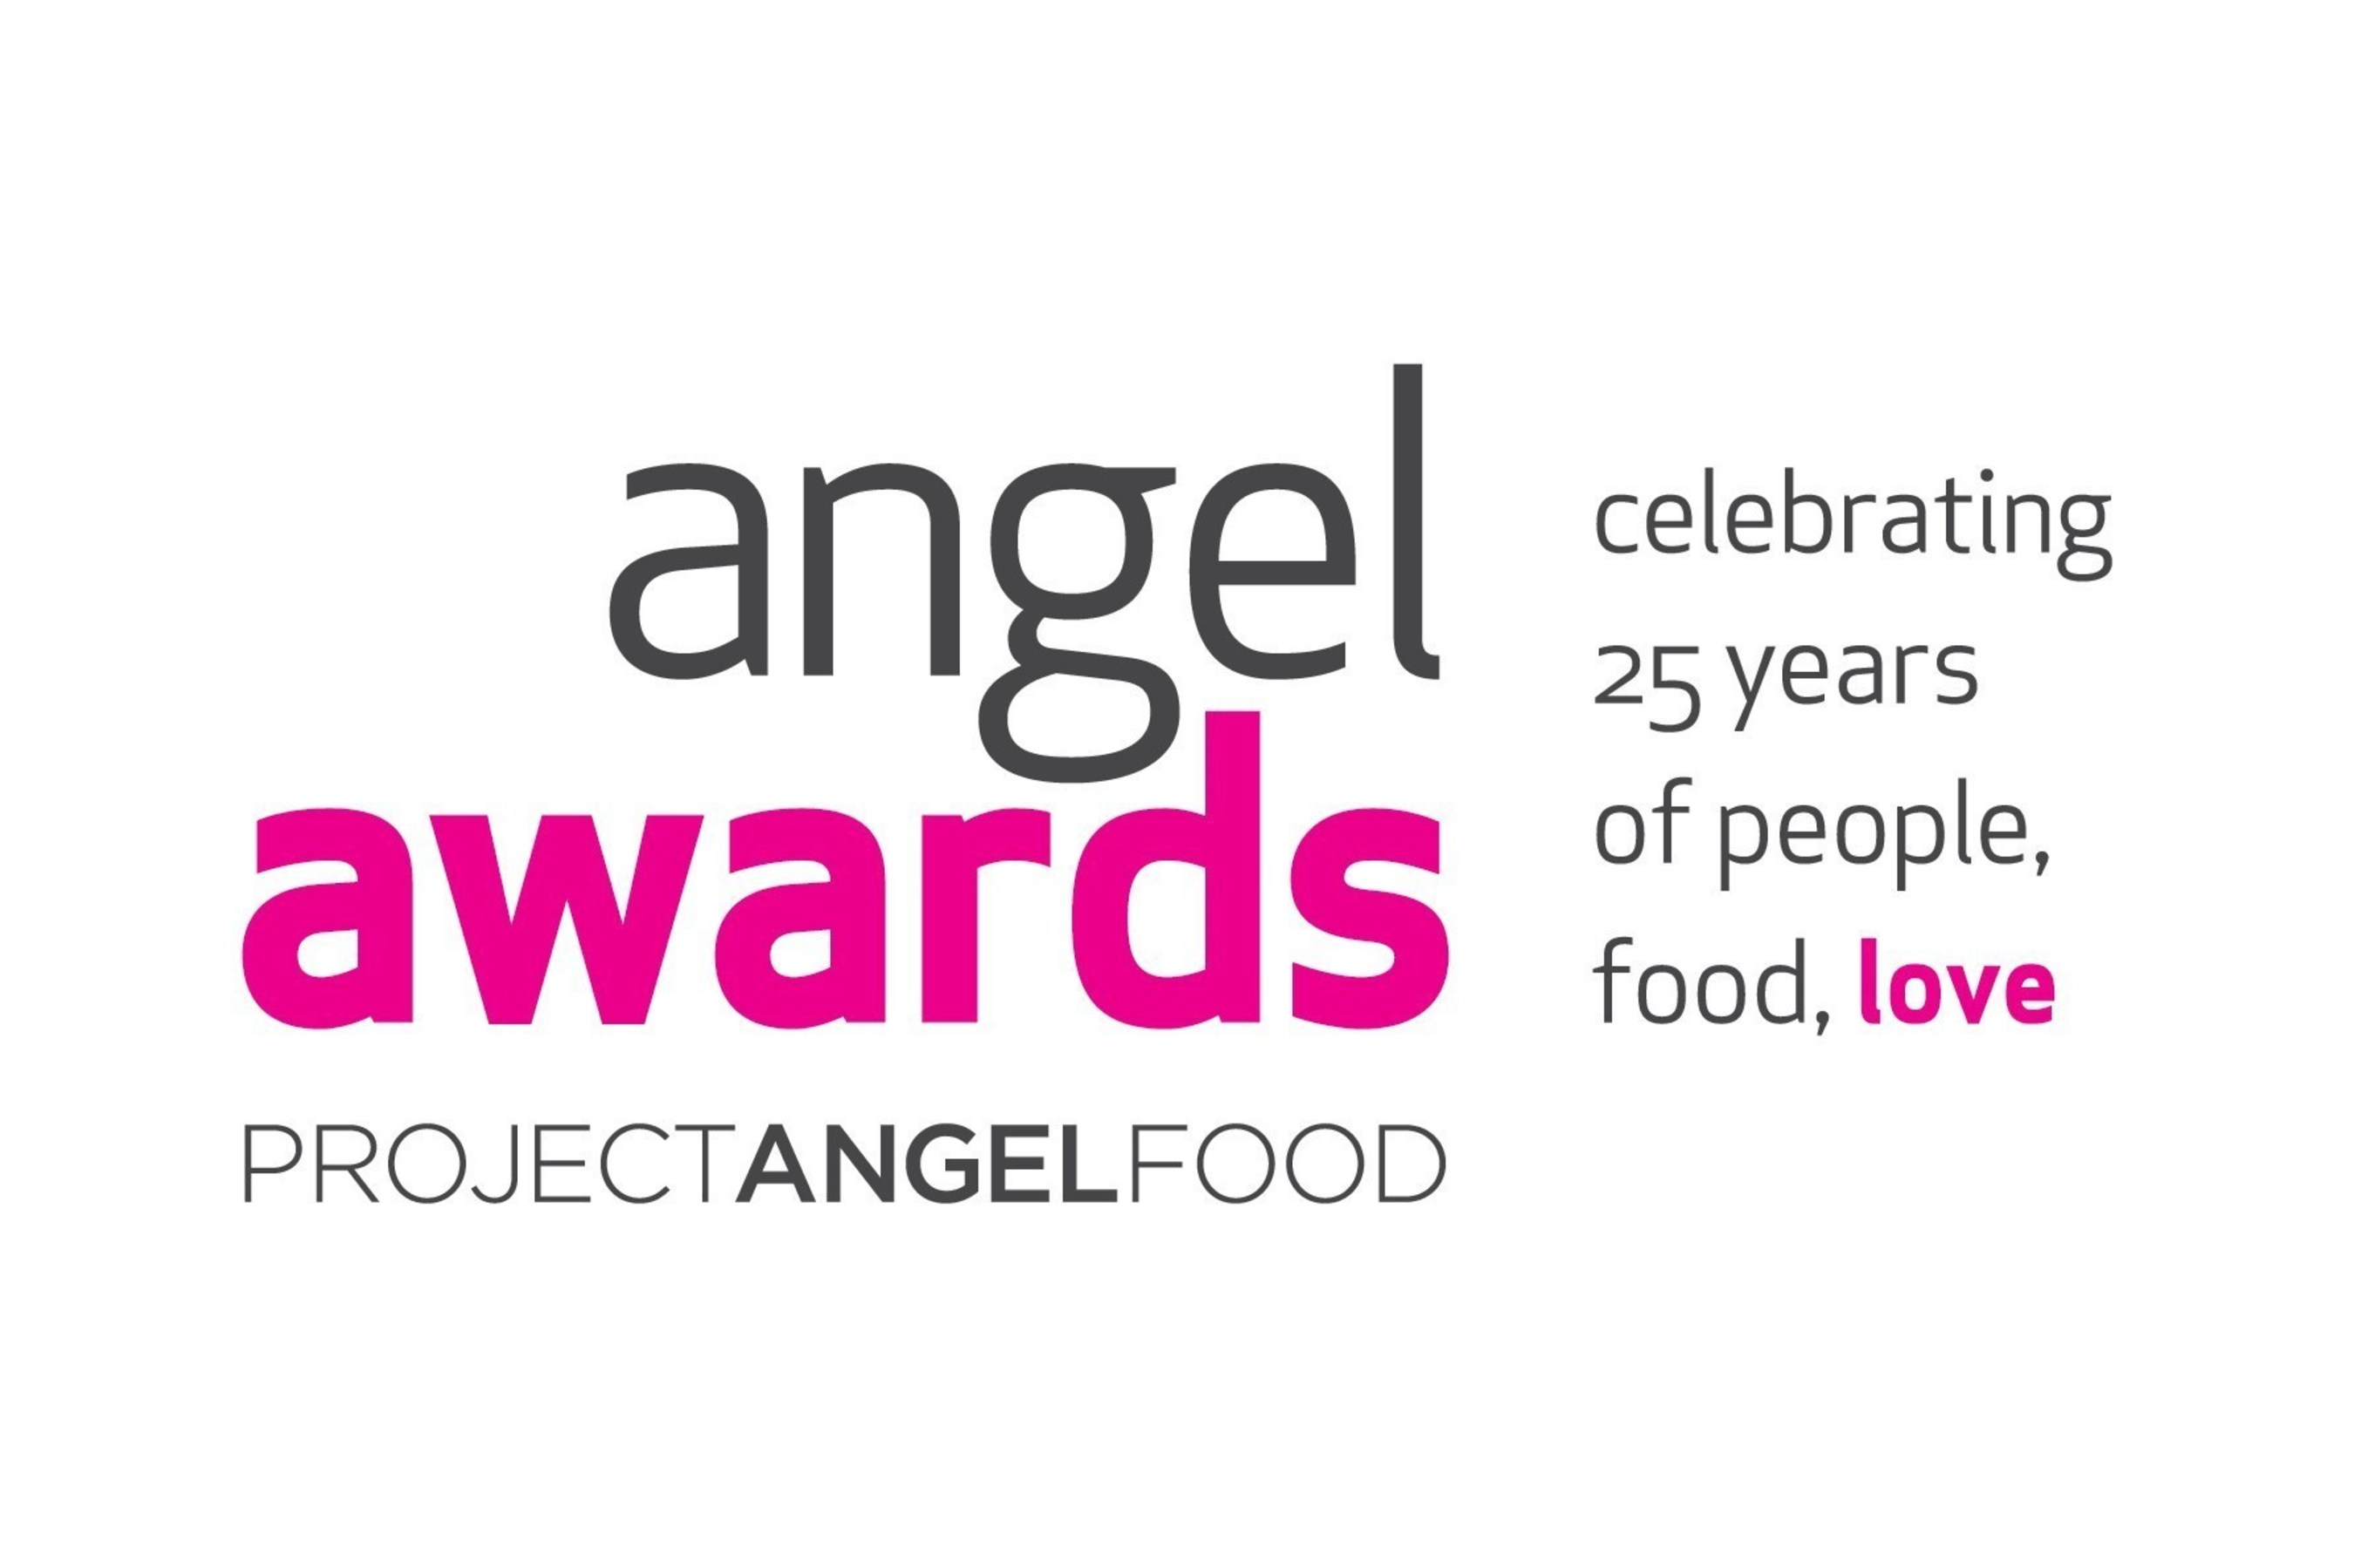 Project Angel Food Celebrates 25 Years and Nine Million Meals Served